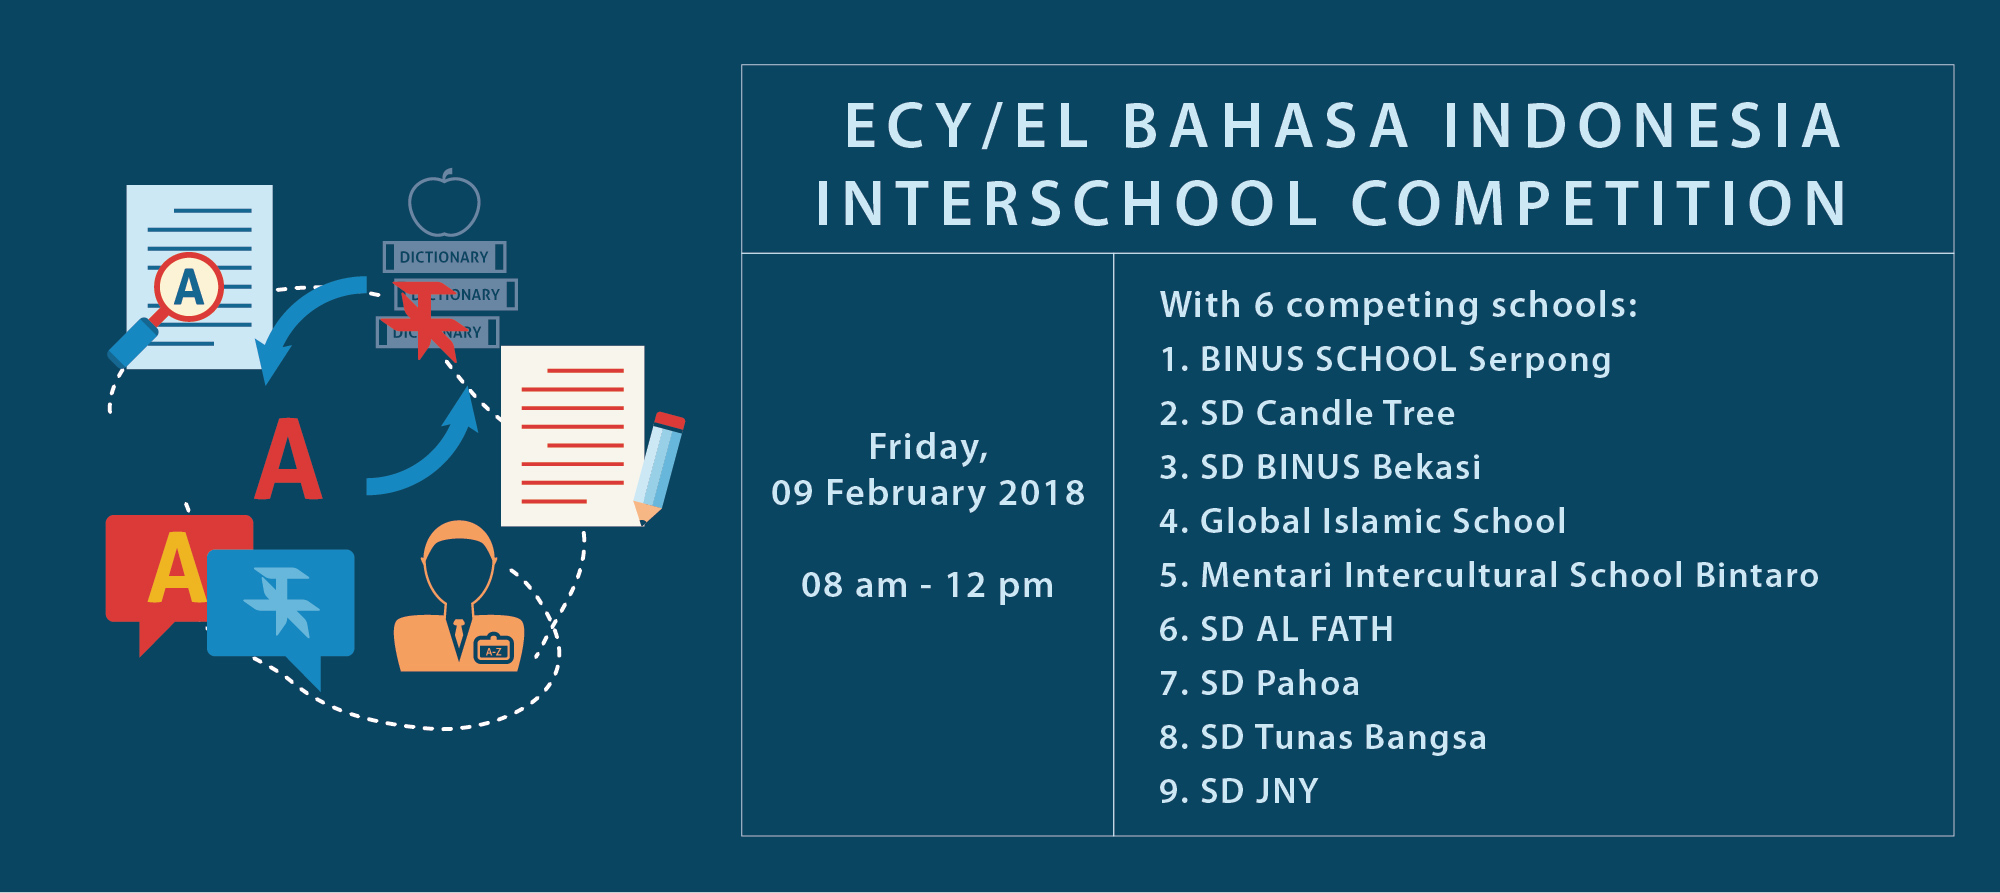 BAHASA INDONESIA INTERSCHOOL COMPETITION